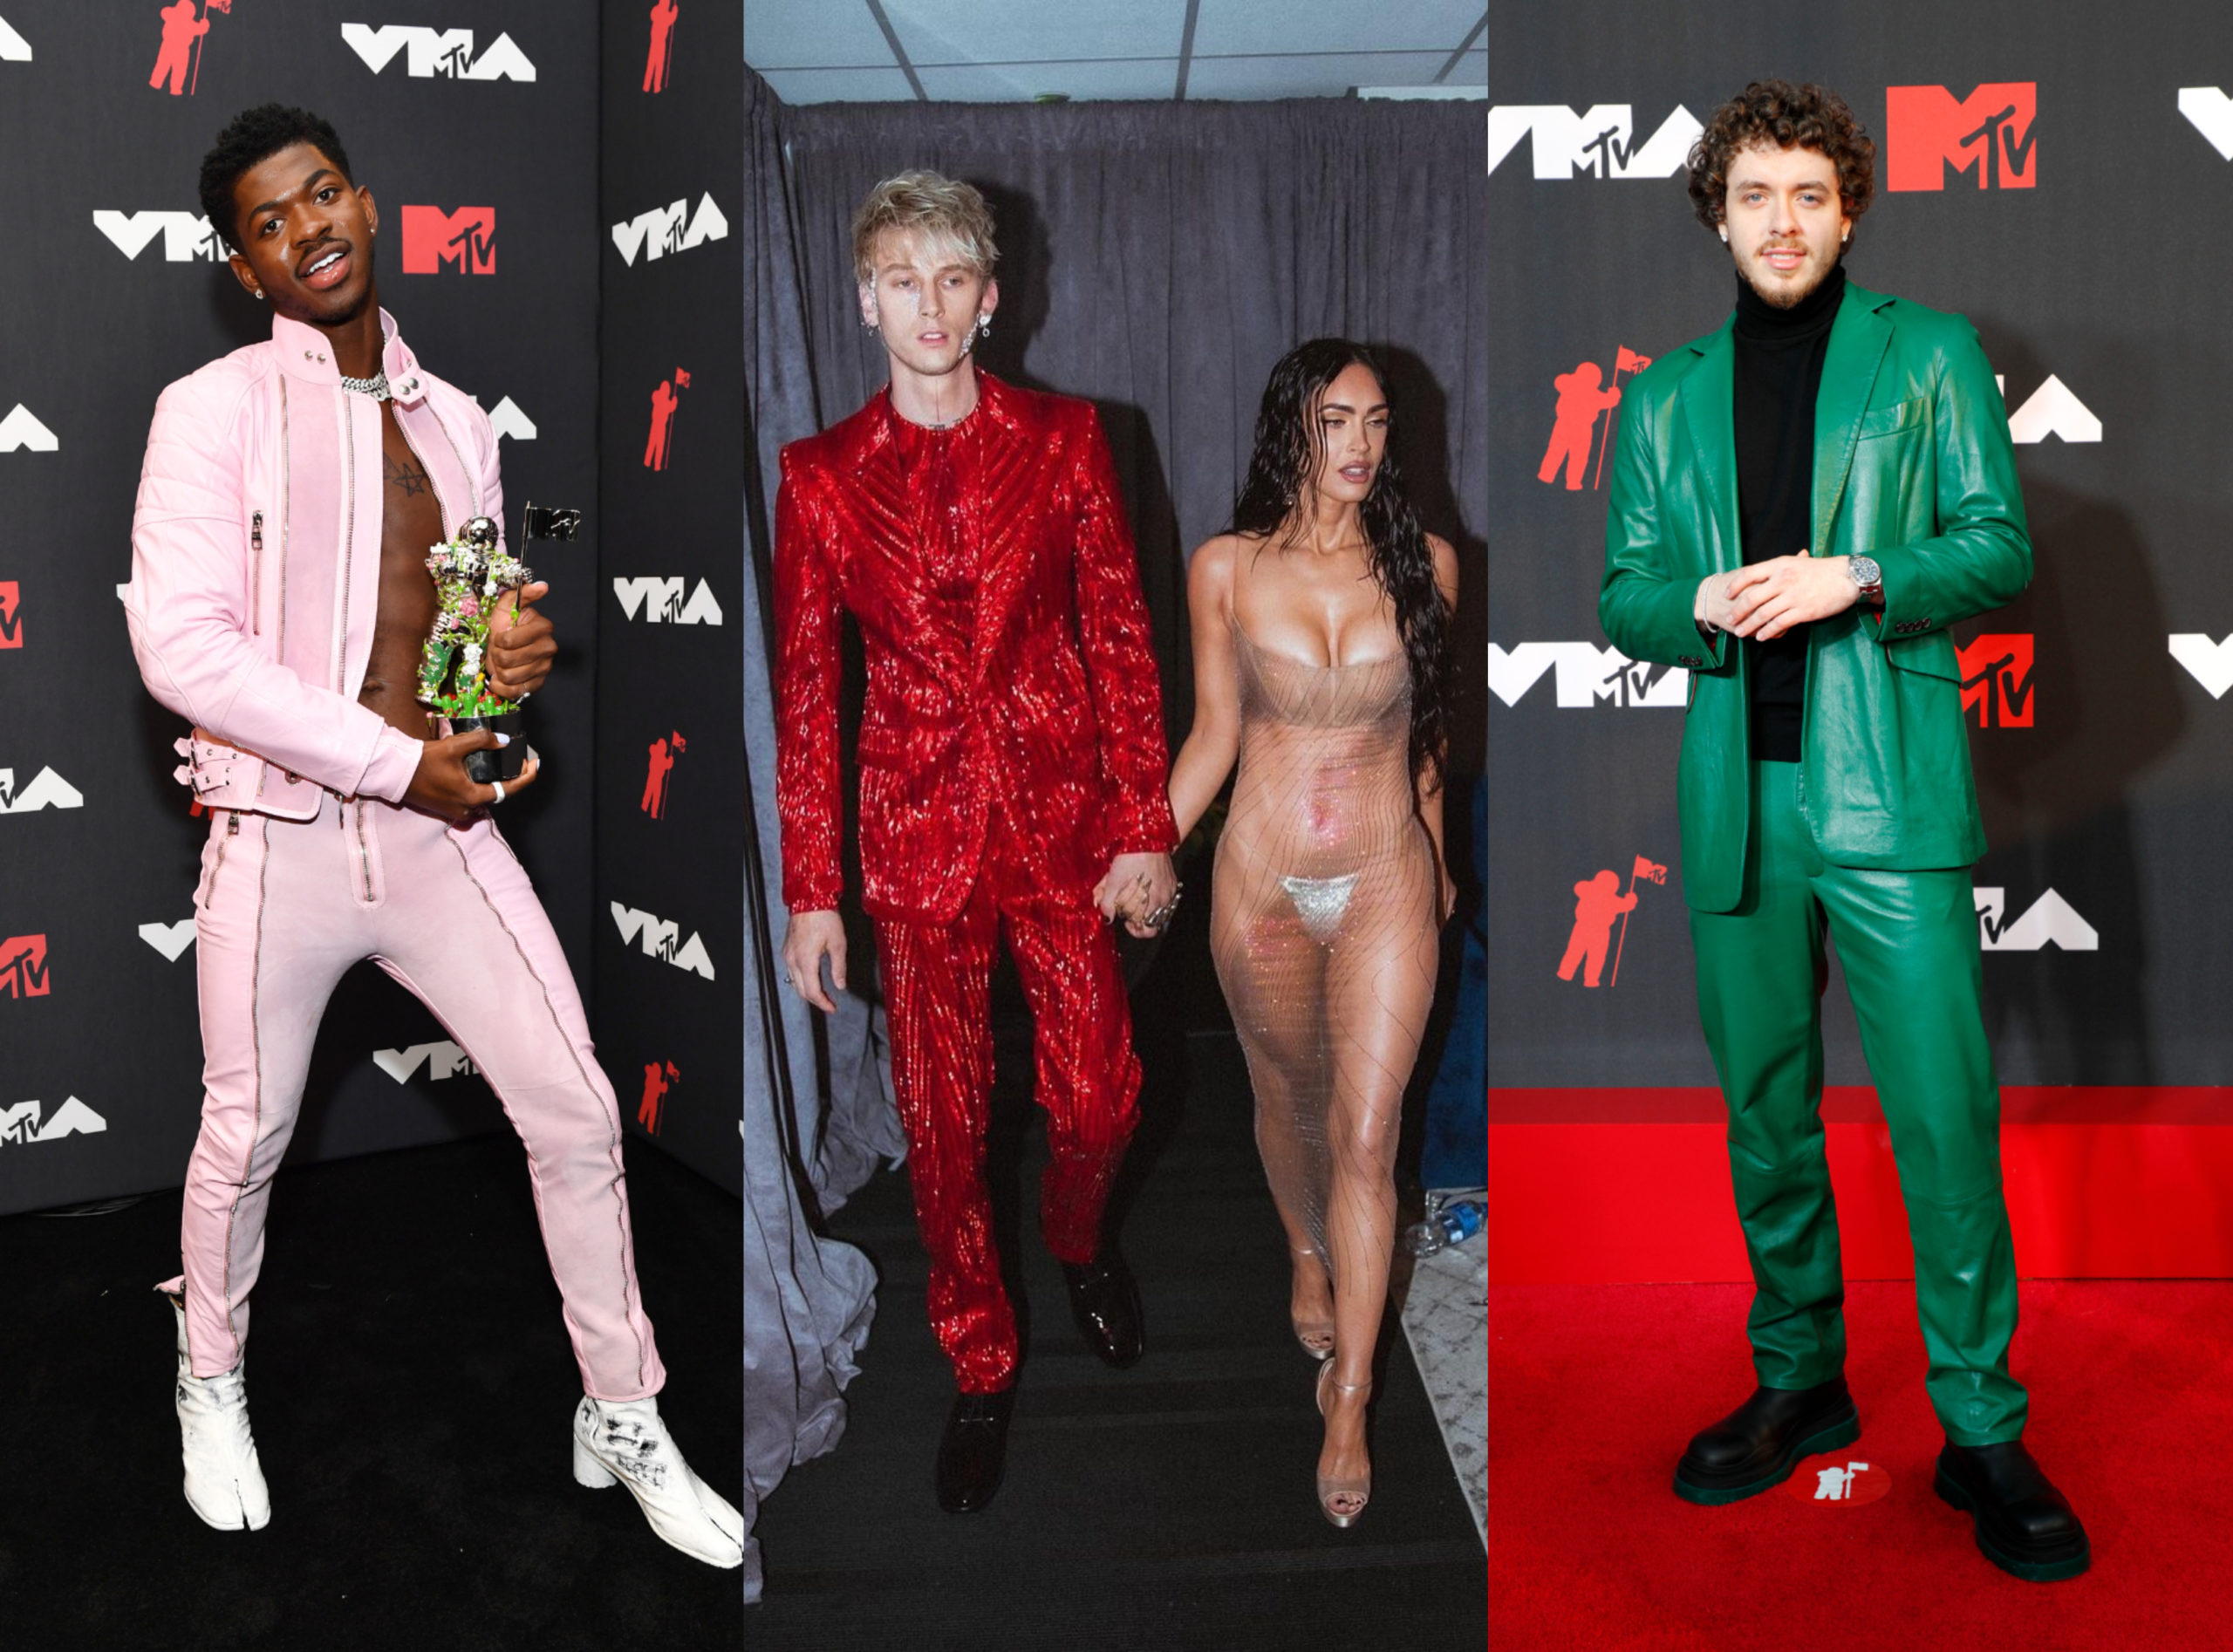 SPOTTED: Jack Harlow, Lil Nas X and More at the VMA Awards 2021